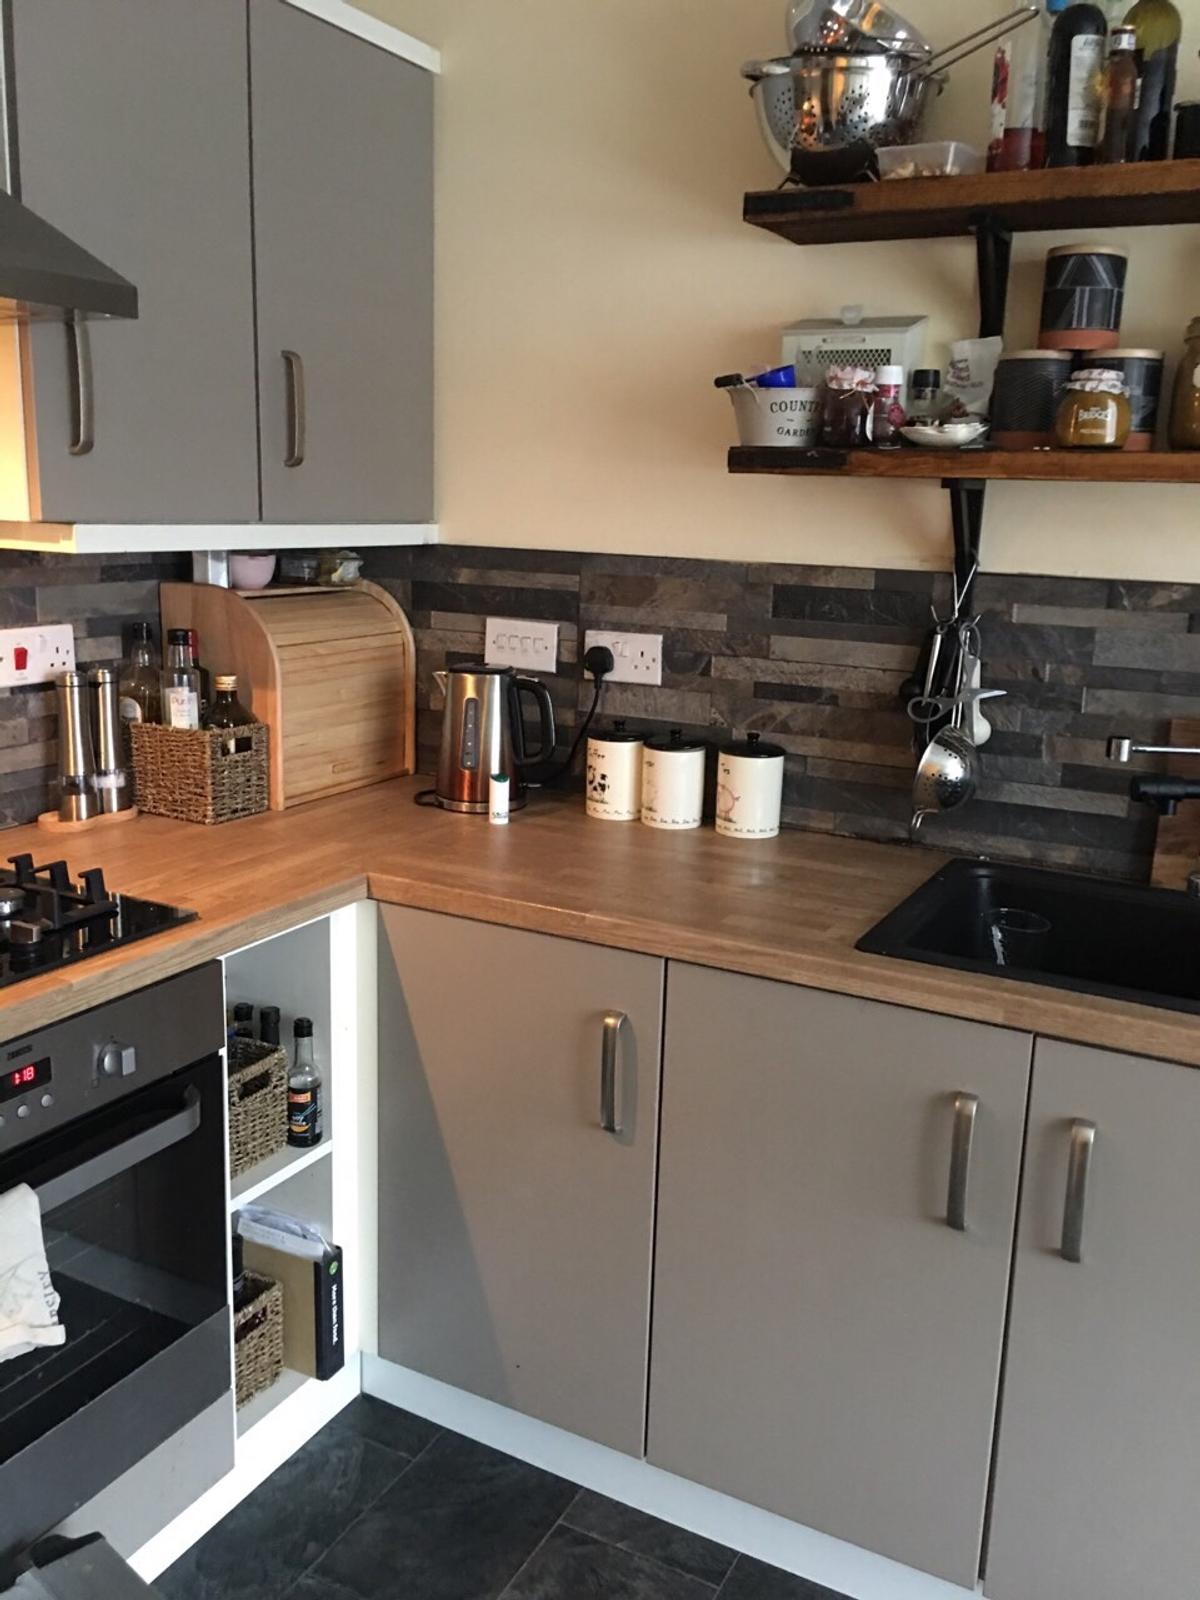 Kitchen Cupboard Doors In Pr25 Chorley For 40 00 For Sale Shpock